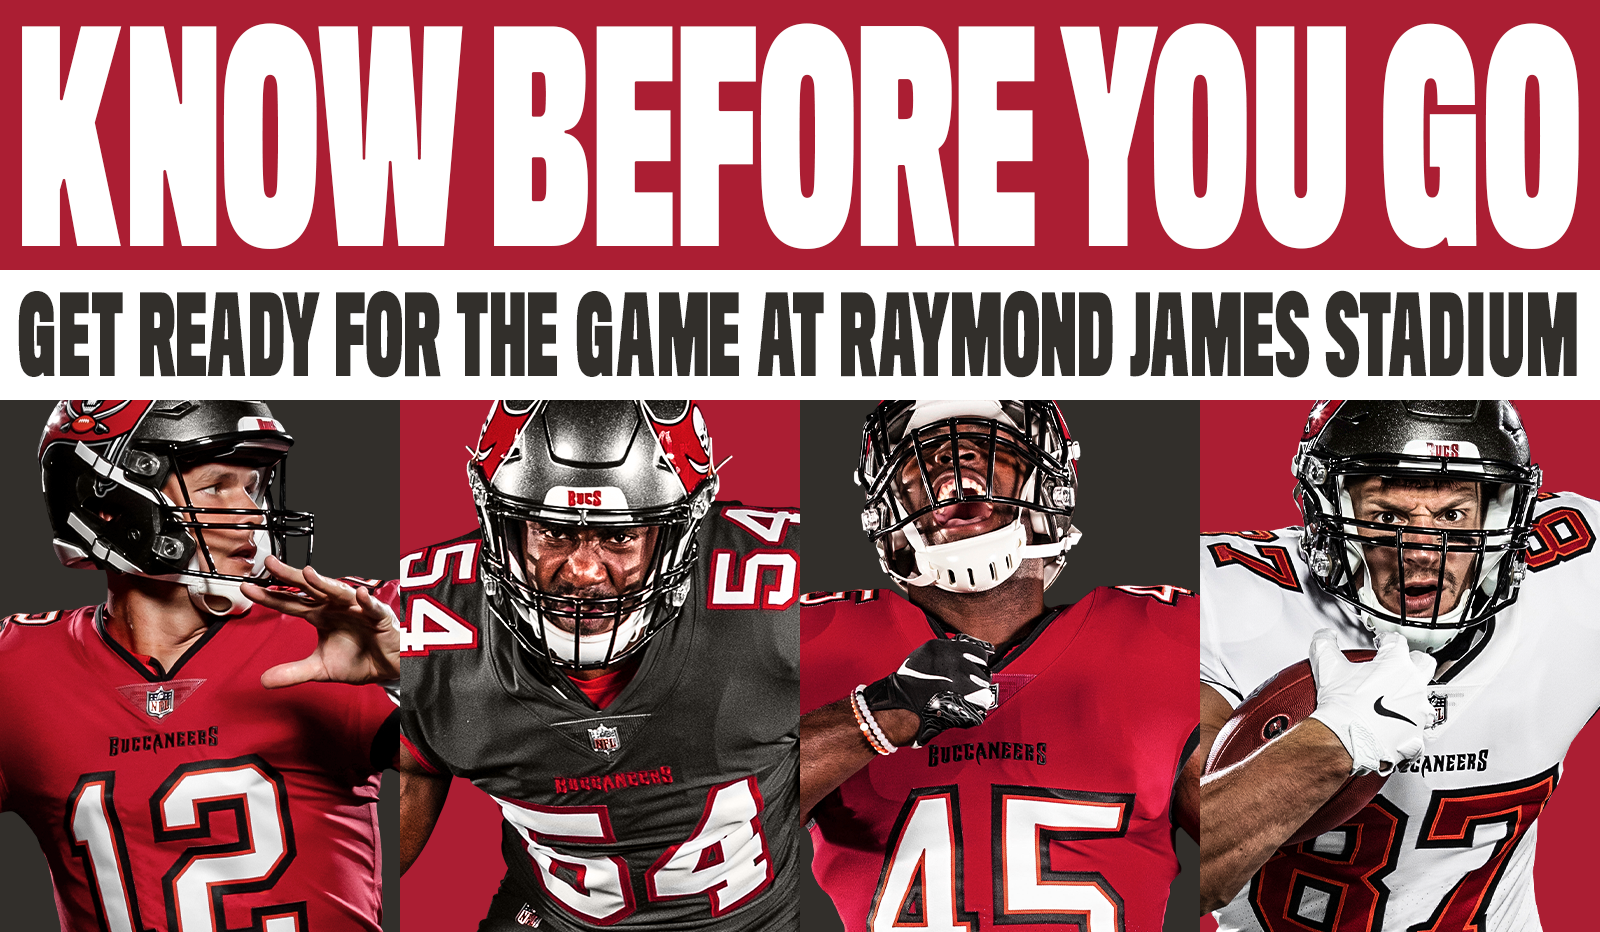 Know before you go - get ready for the game at raymond james stadium